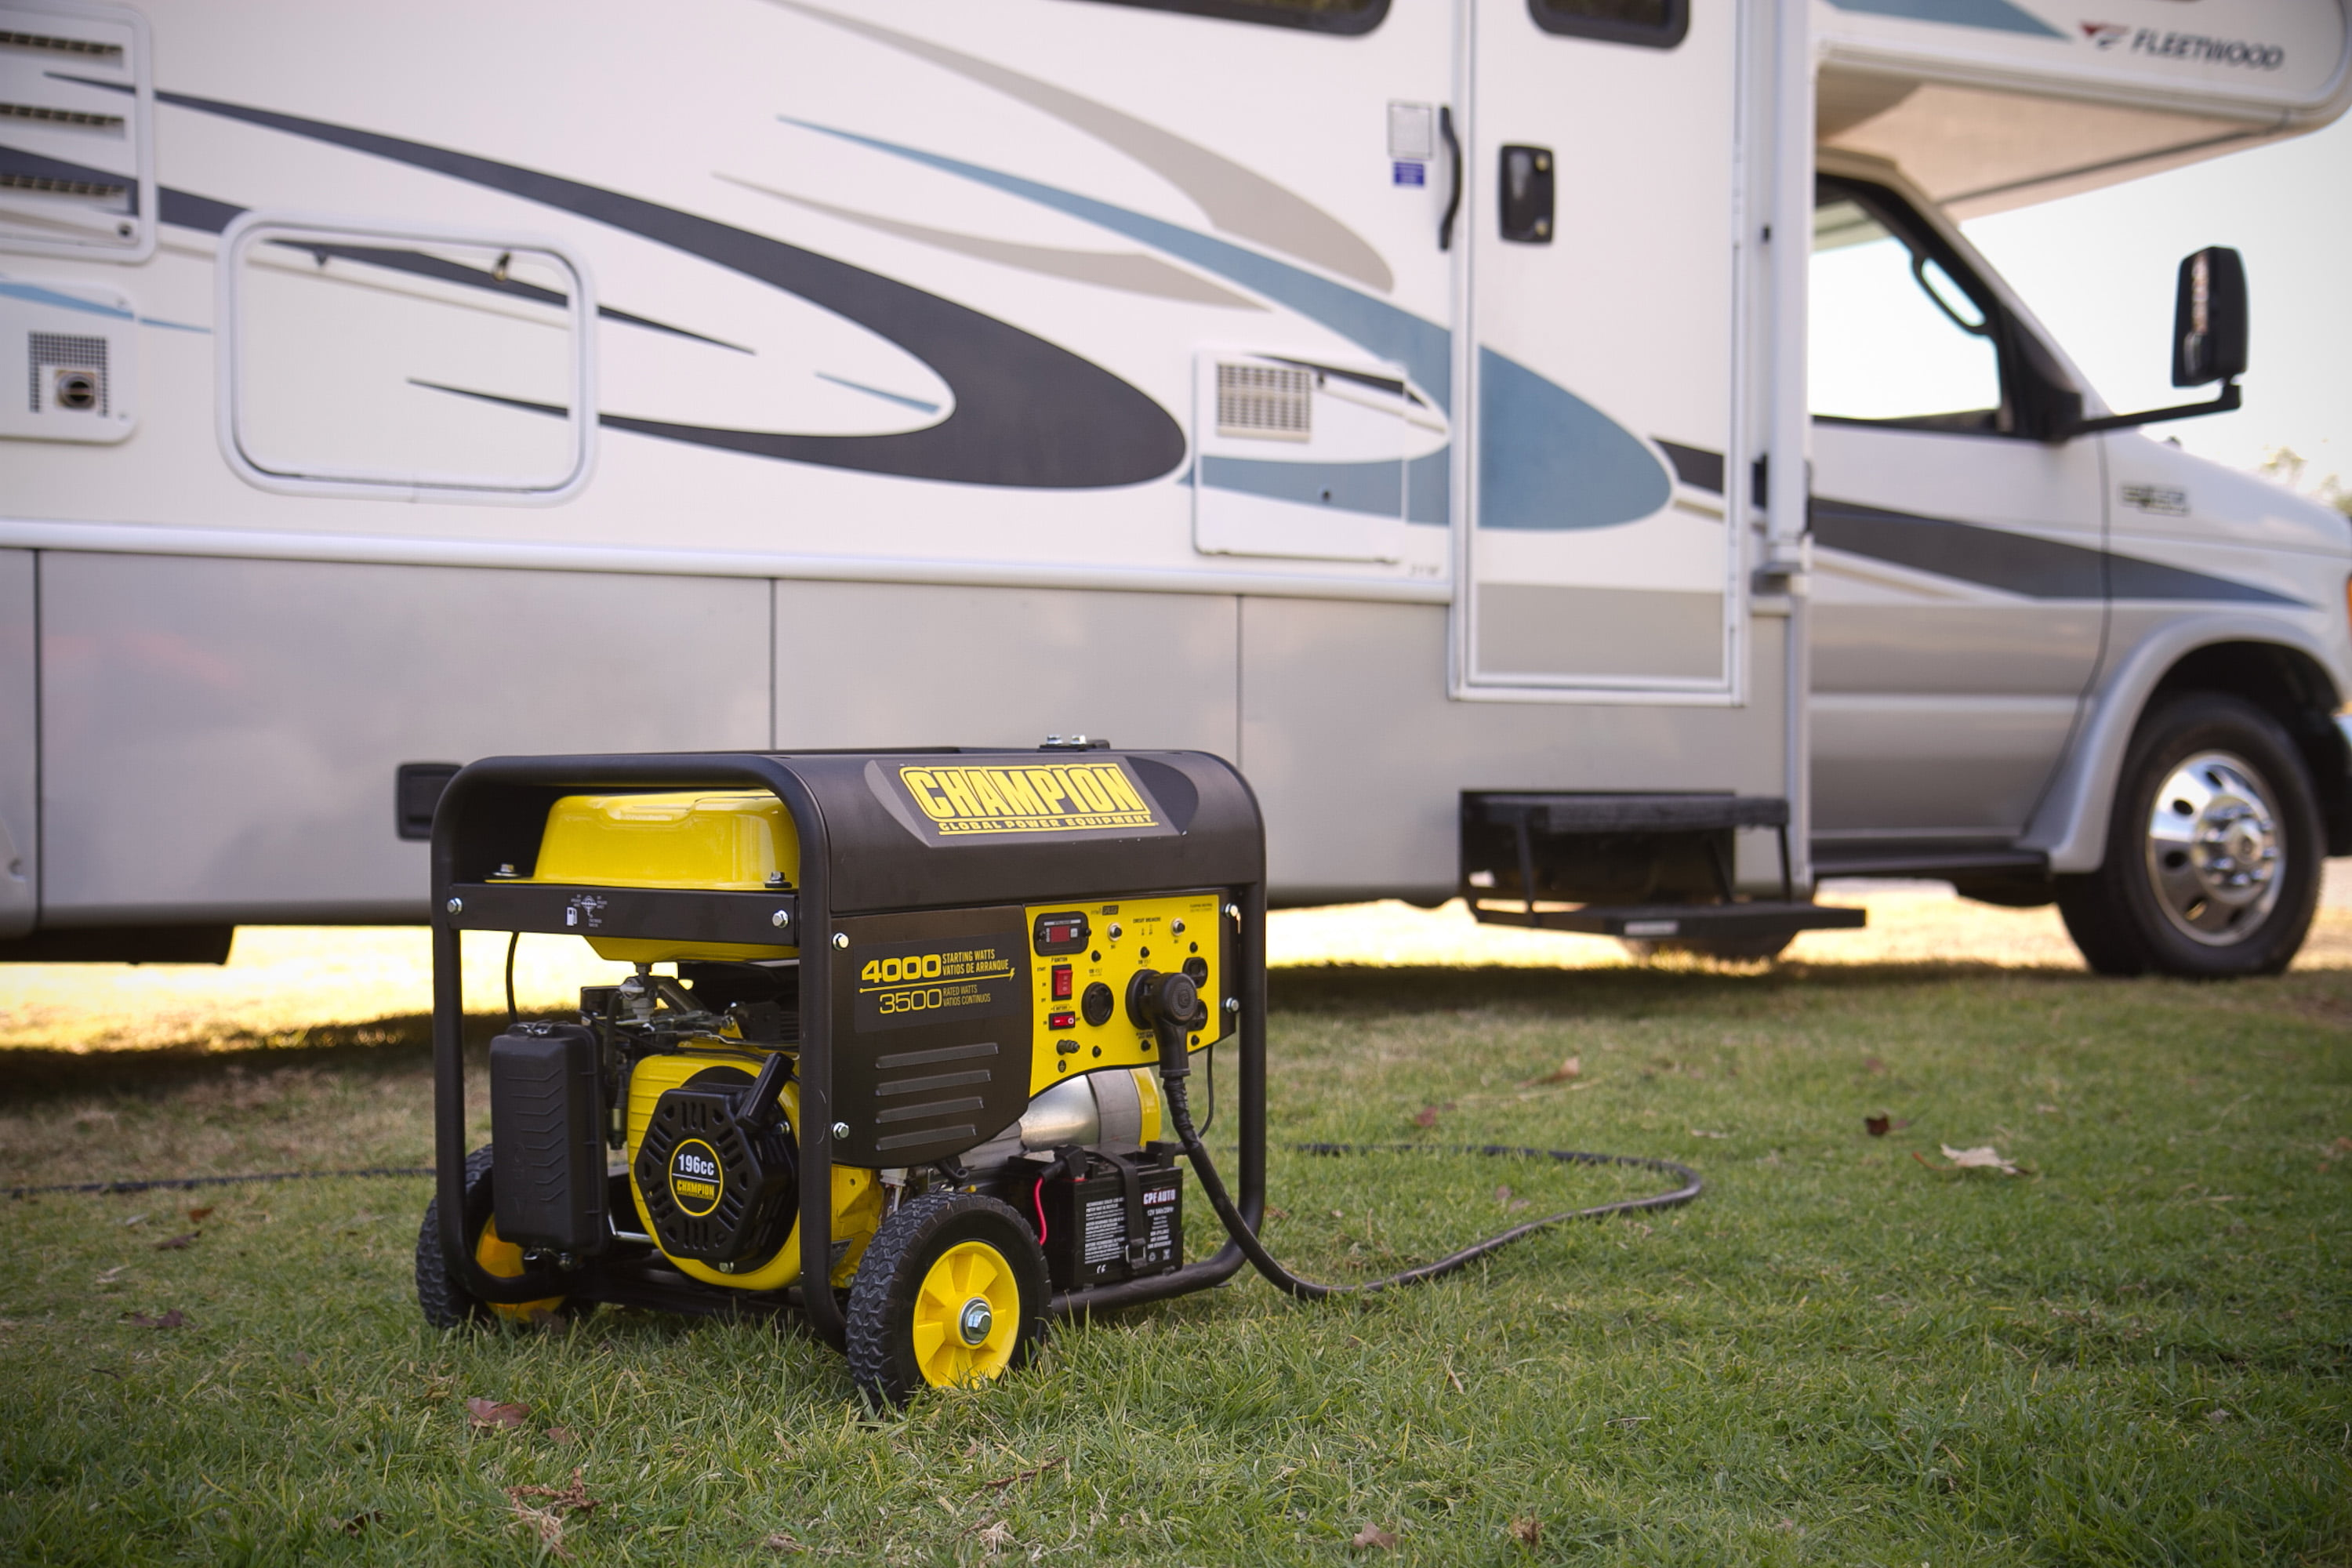 Depot Your One Stop Trailer Shop 7 Blade Rv Type Plug Wiring Champion 46565 3500 Watt Ready Portable Generator With Wireless Remote Start Epa